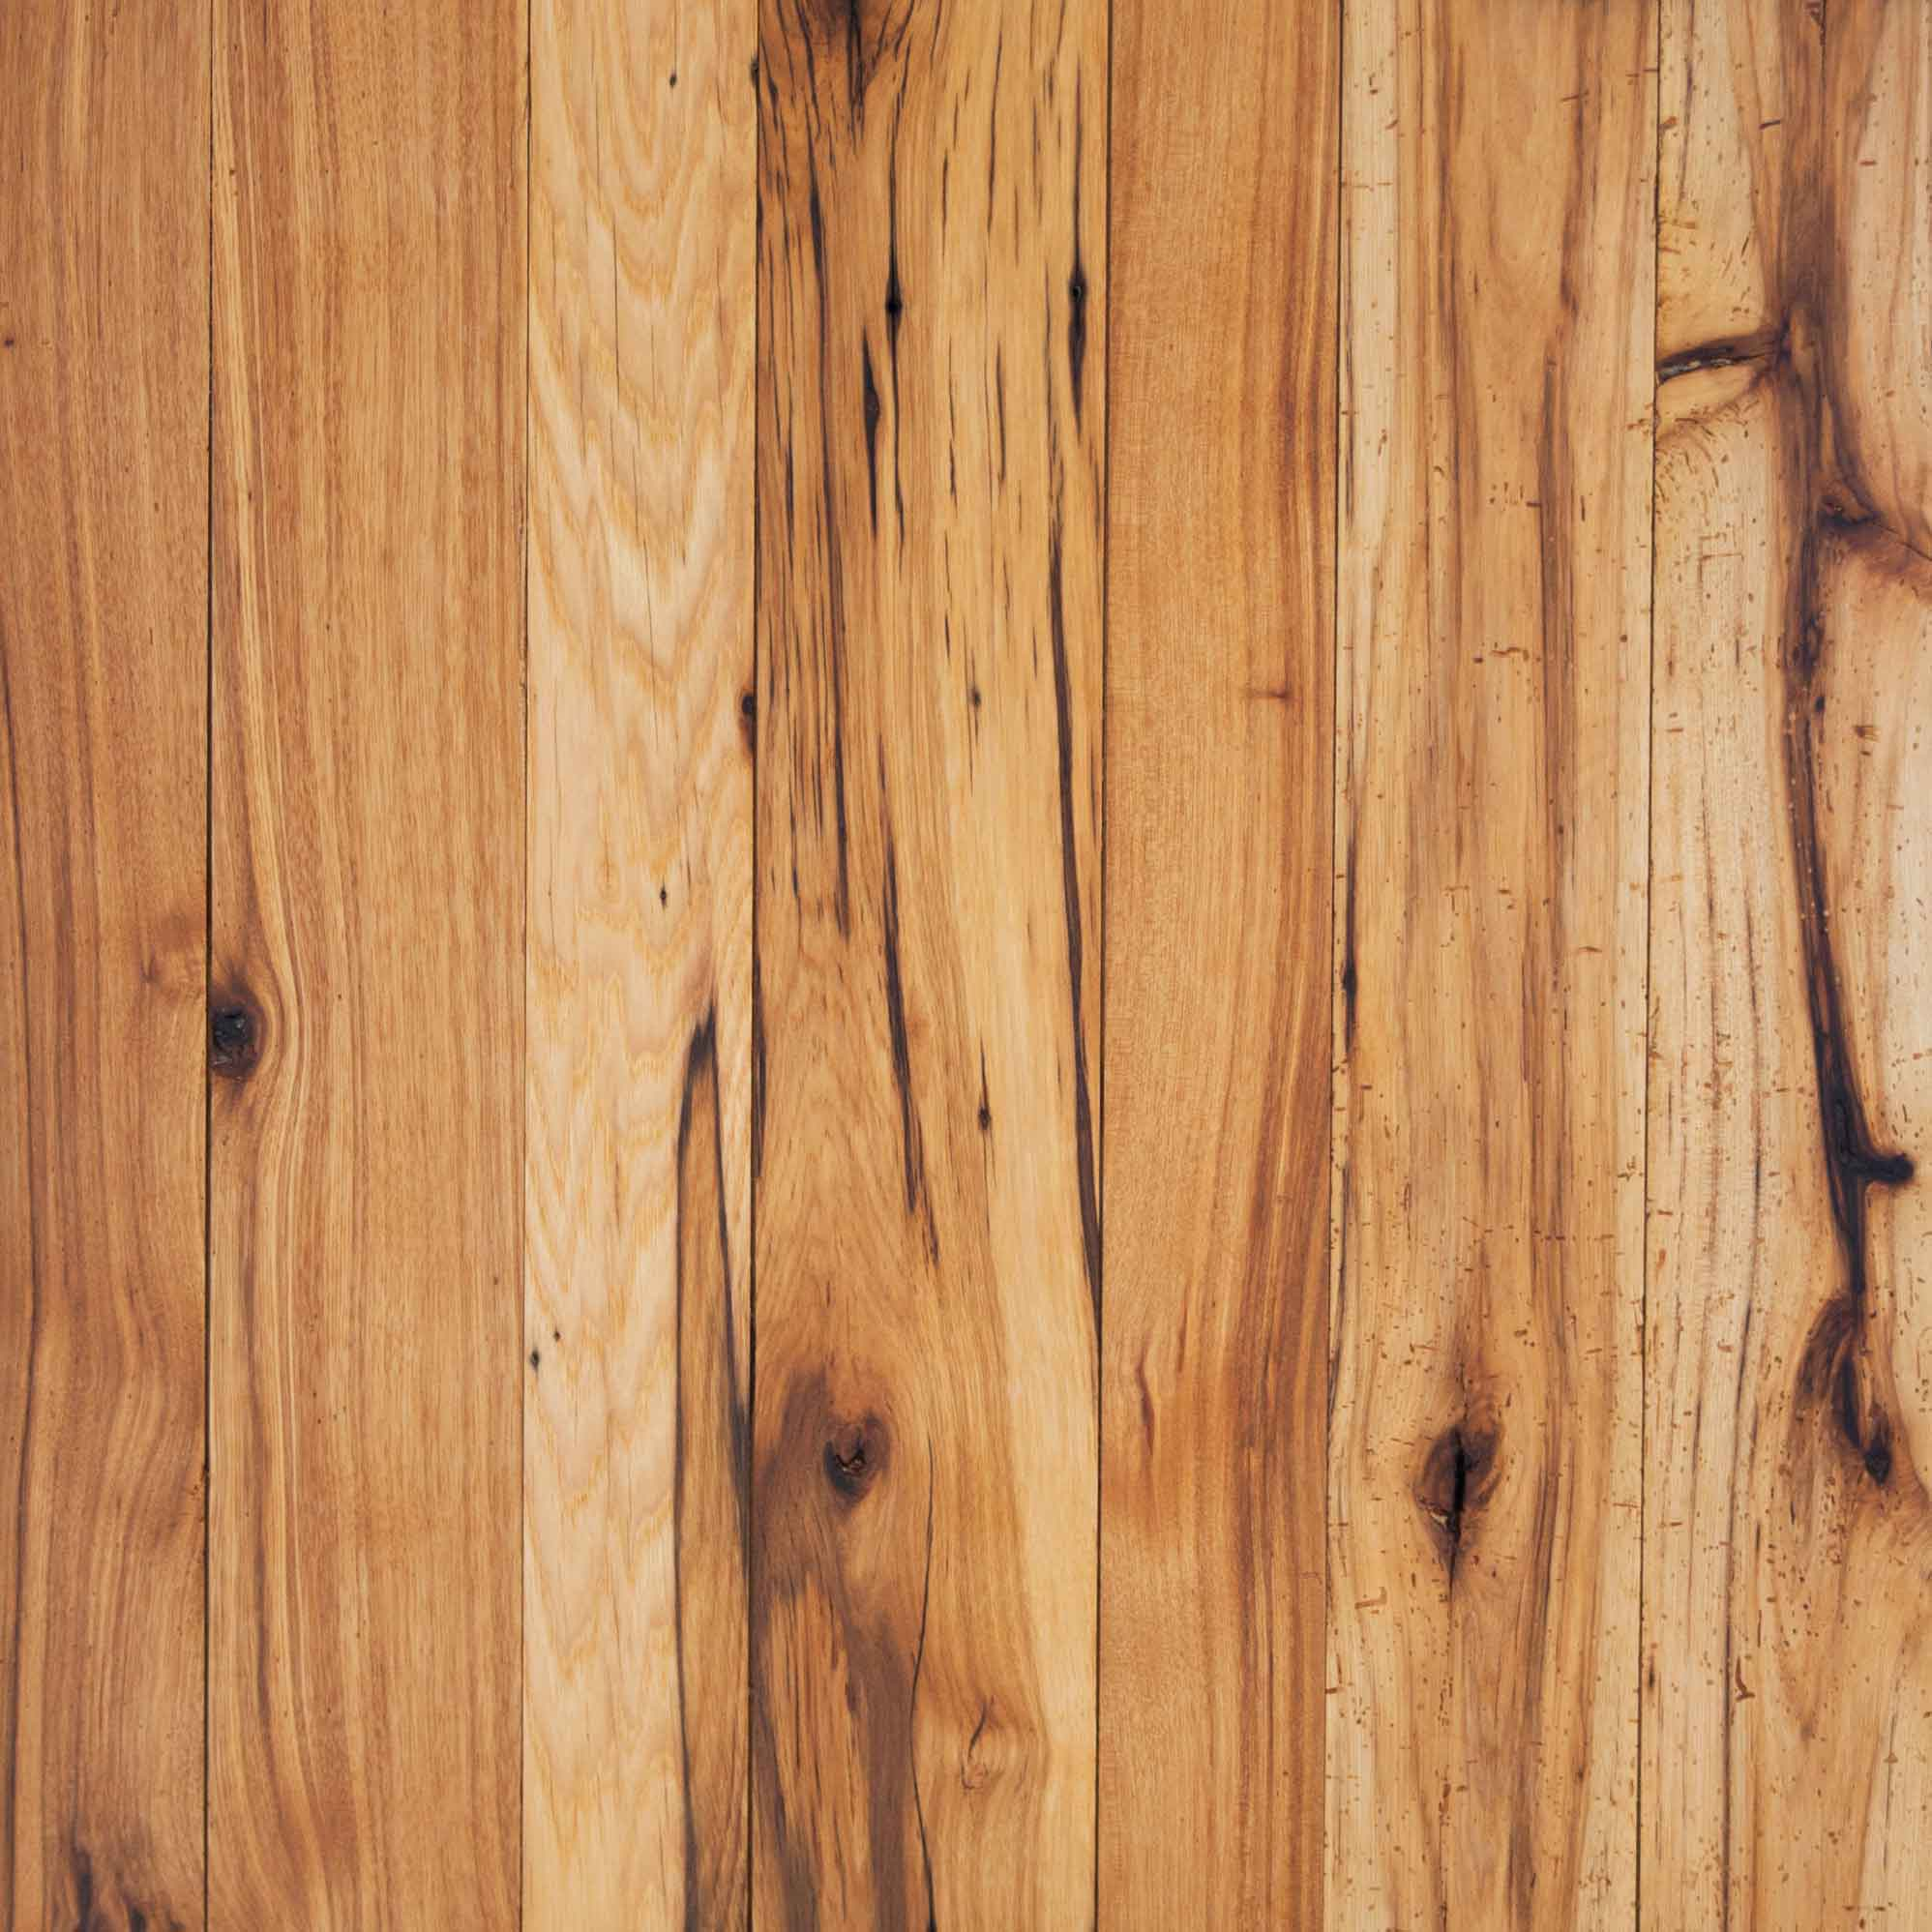 Rustic Hickory - Starting at $8.50